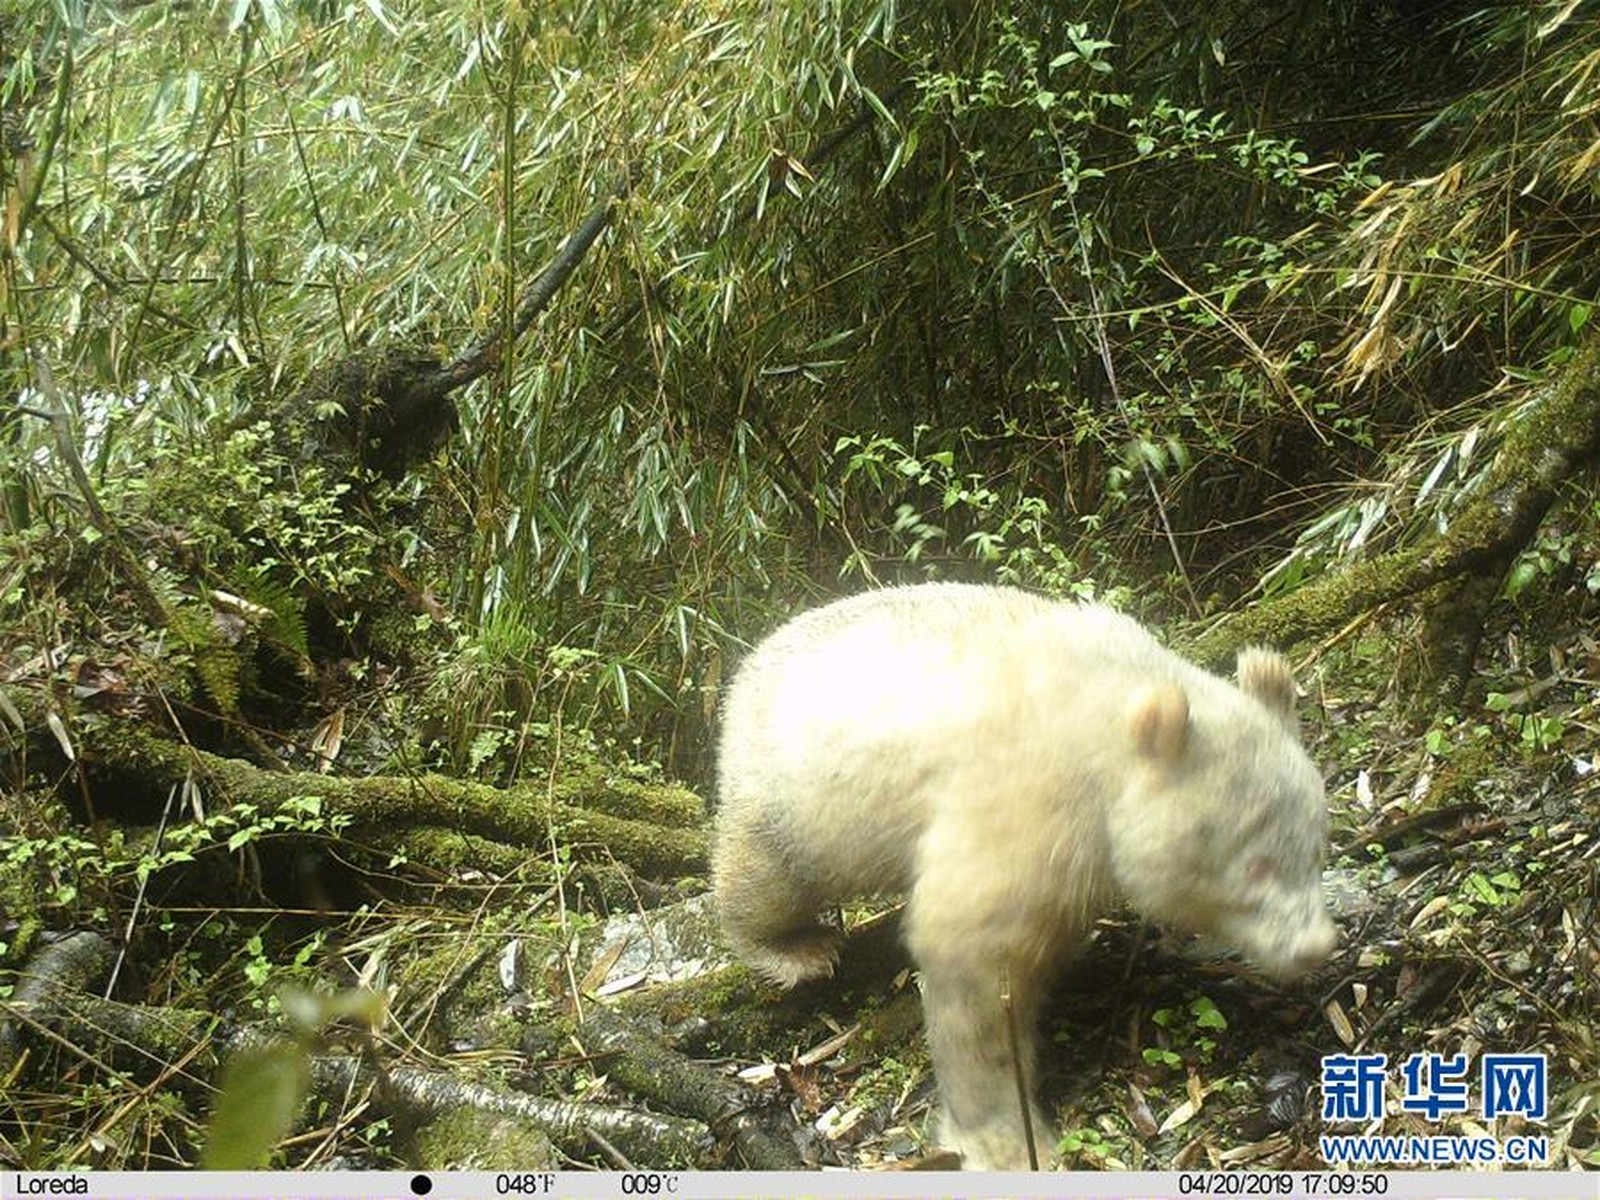 Panda albino é visto em reserva natural na China